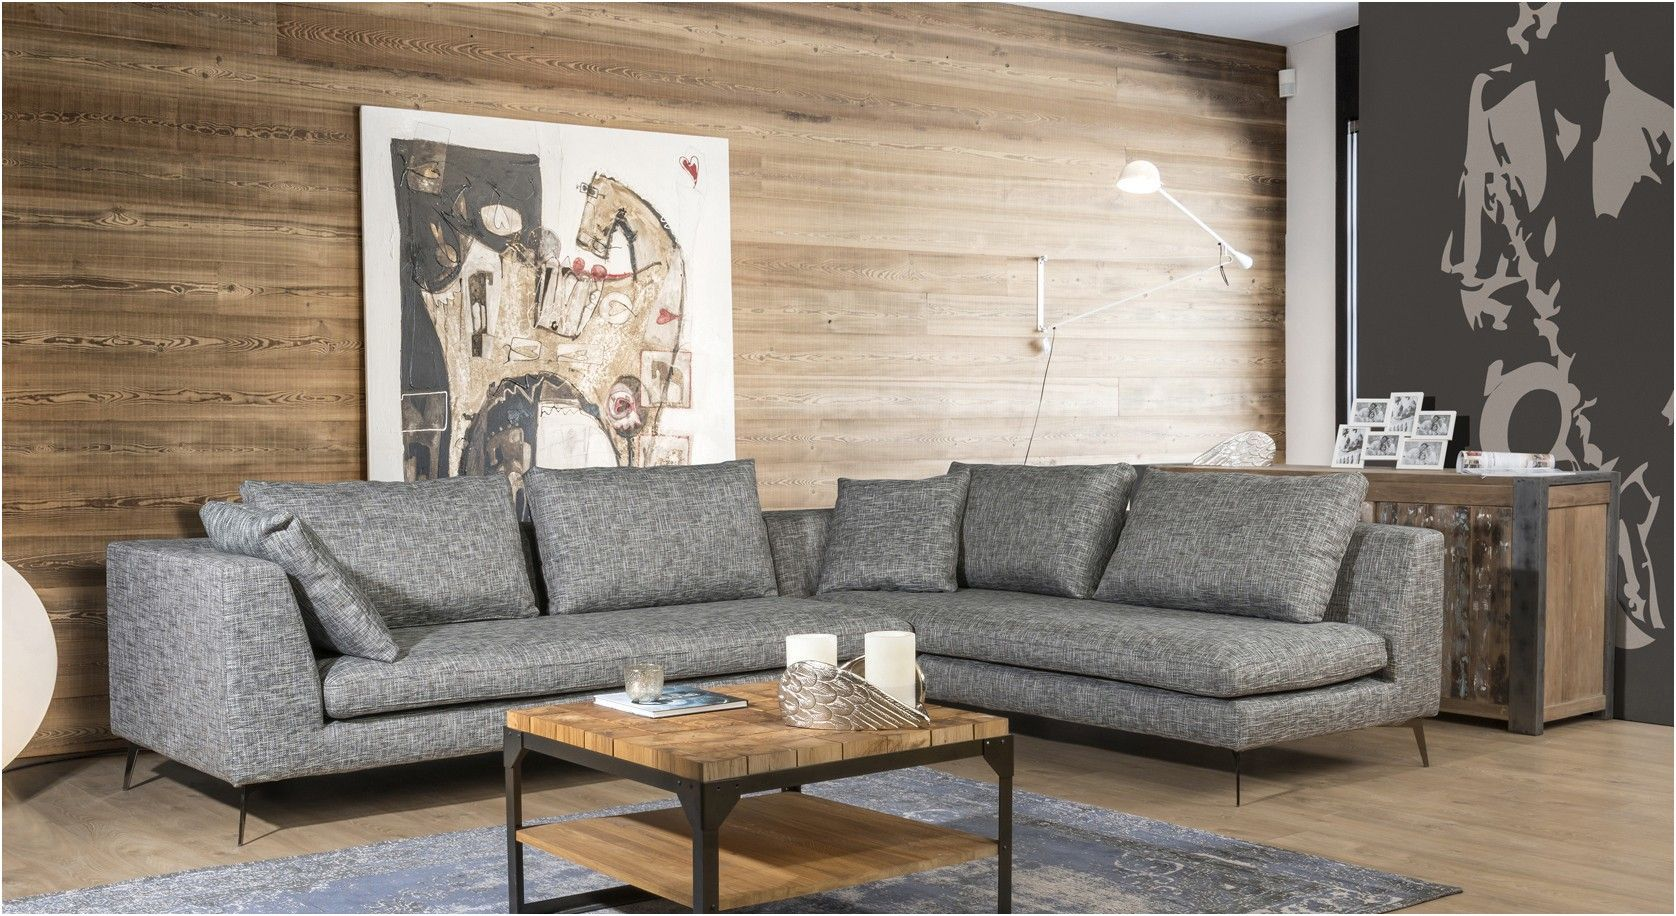 Big Sofa Federkern Bescheiden Big Sofa Federkern Couch Möbel Di 2018 Pinterest